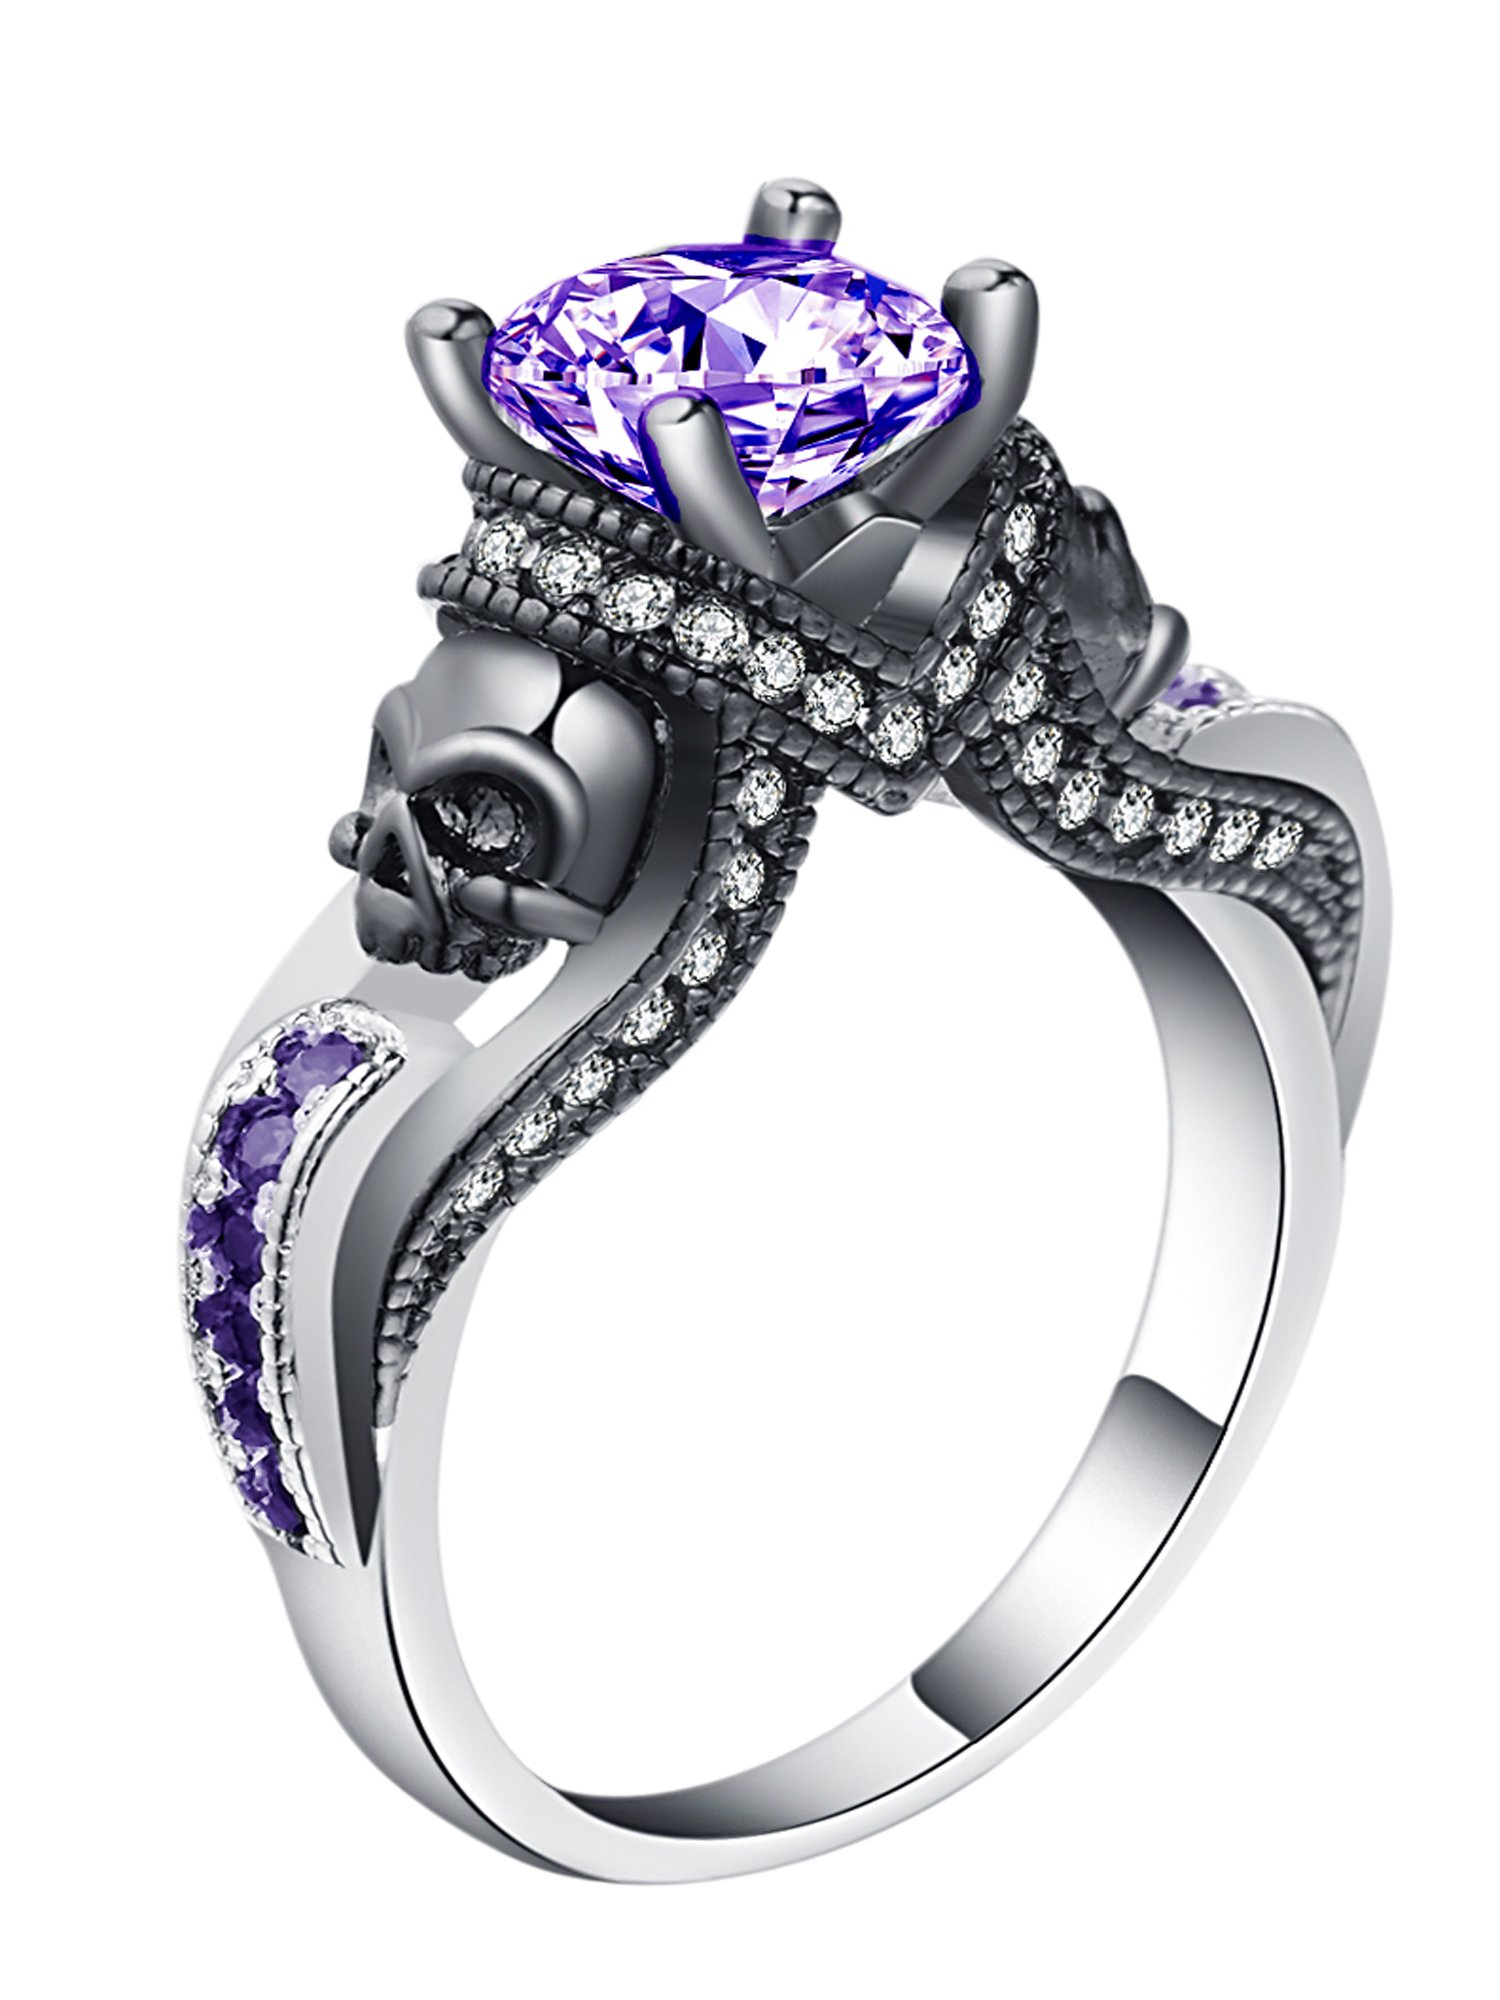 Ginger Lyne Collection Chasity Purple Skulls Goth Style Engagement Ring Size 11